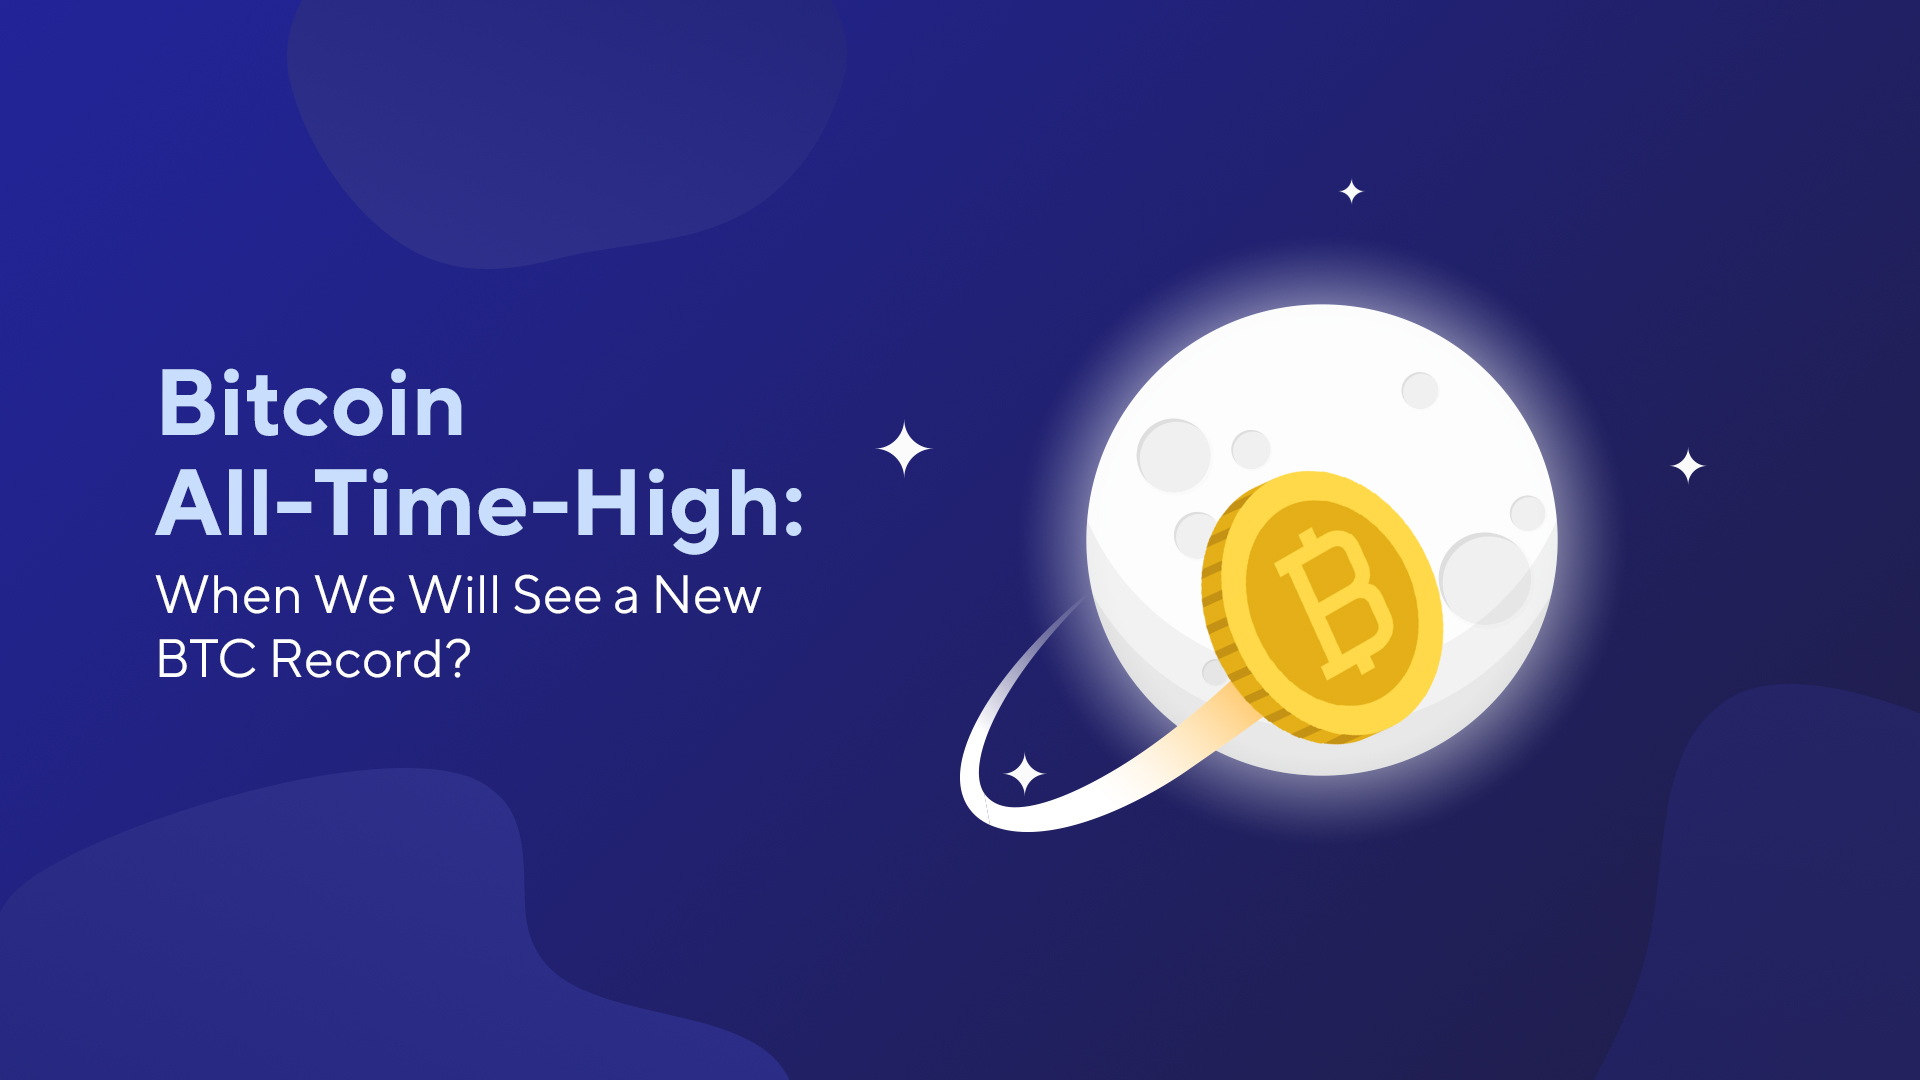 Bitcoin All-Time High: When We Will See a New BTC Record?